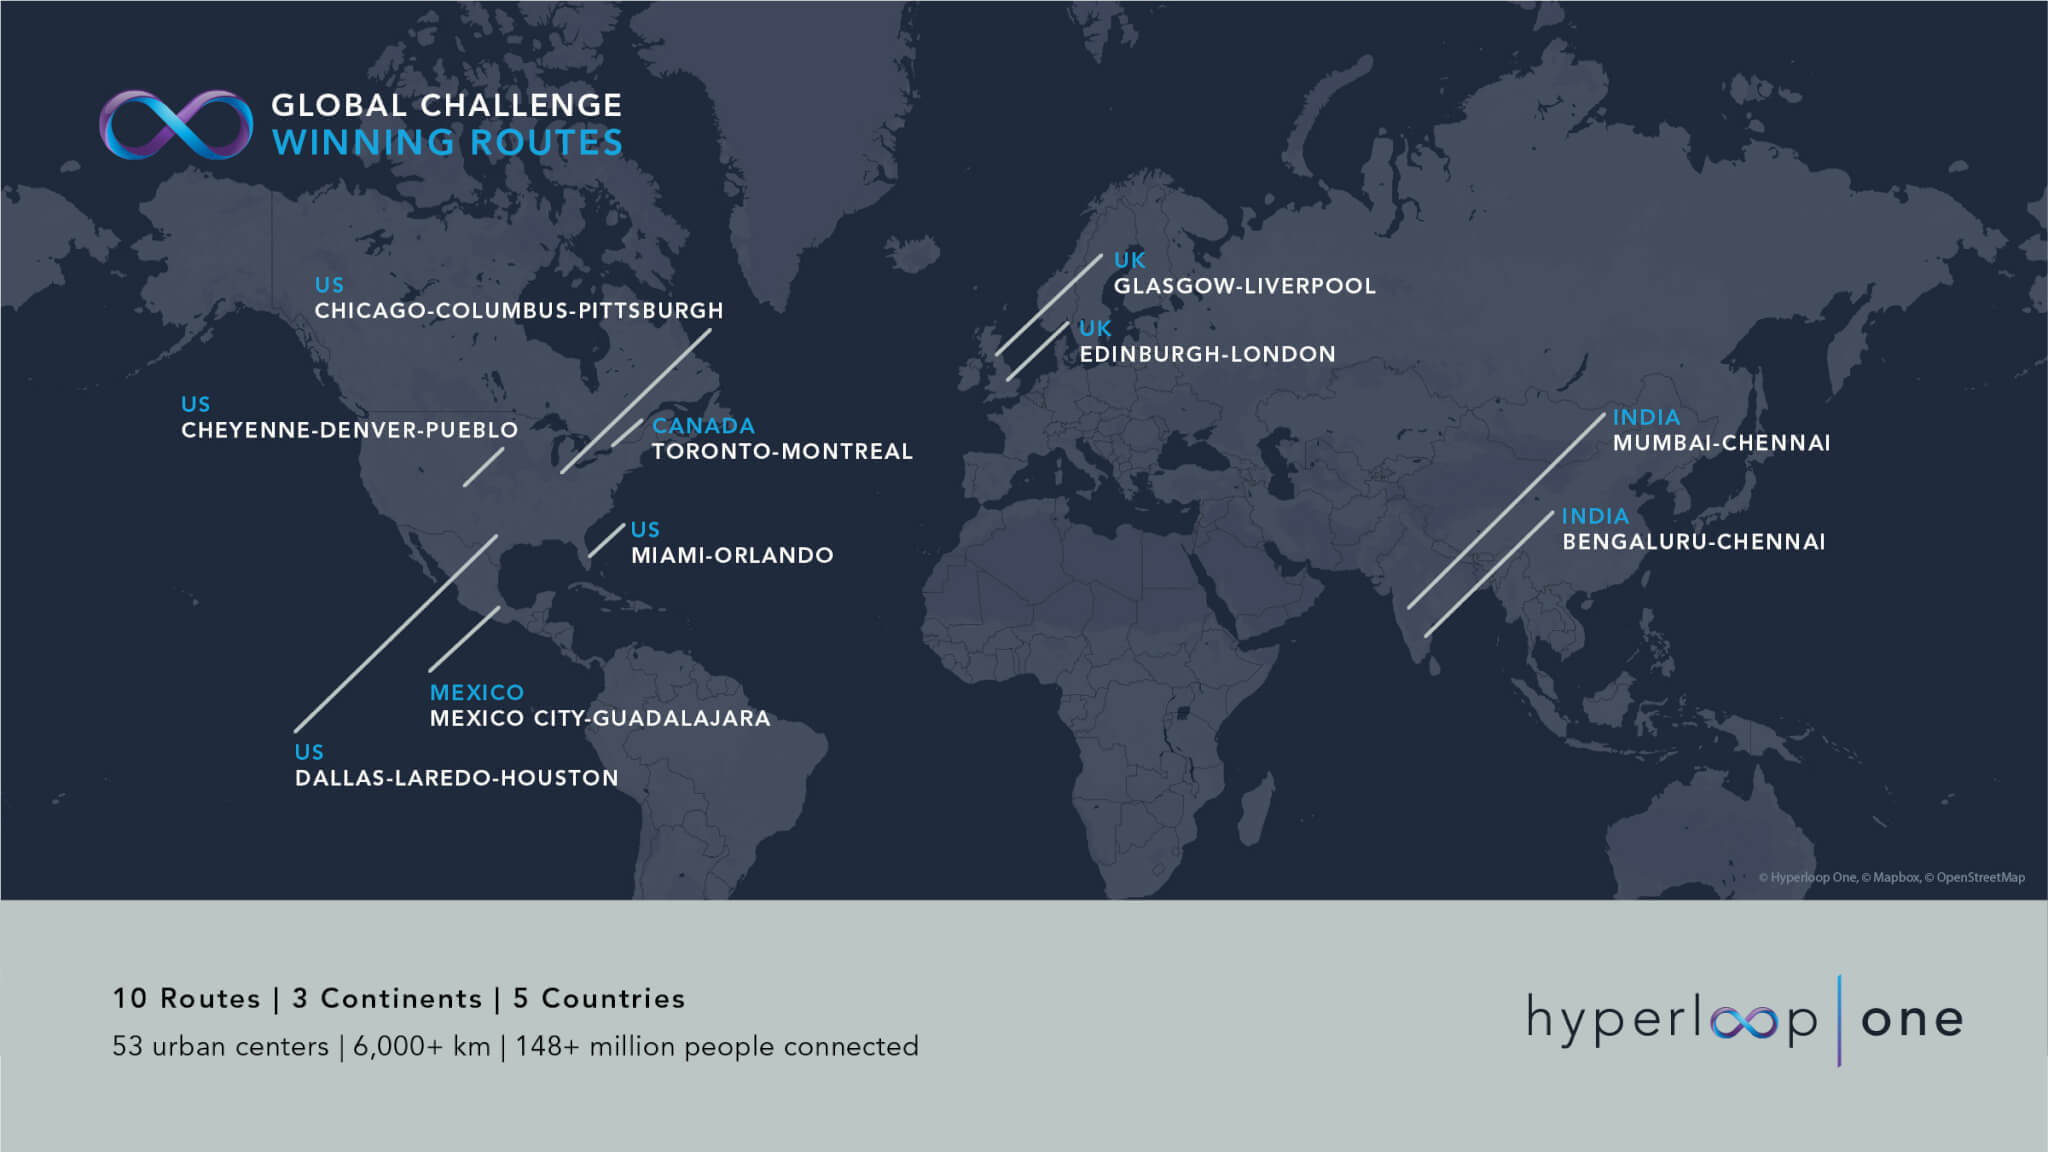 hyperloop one info